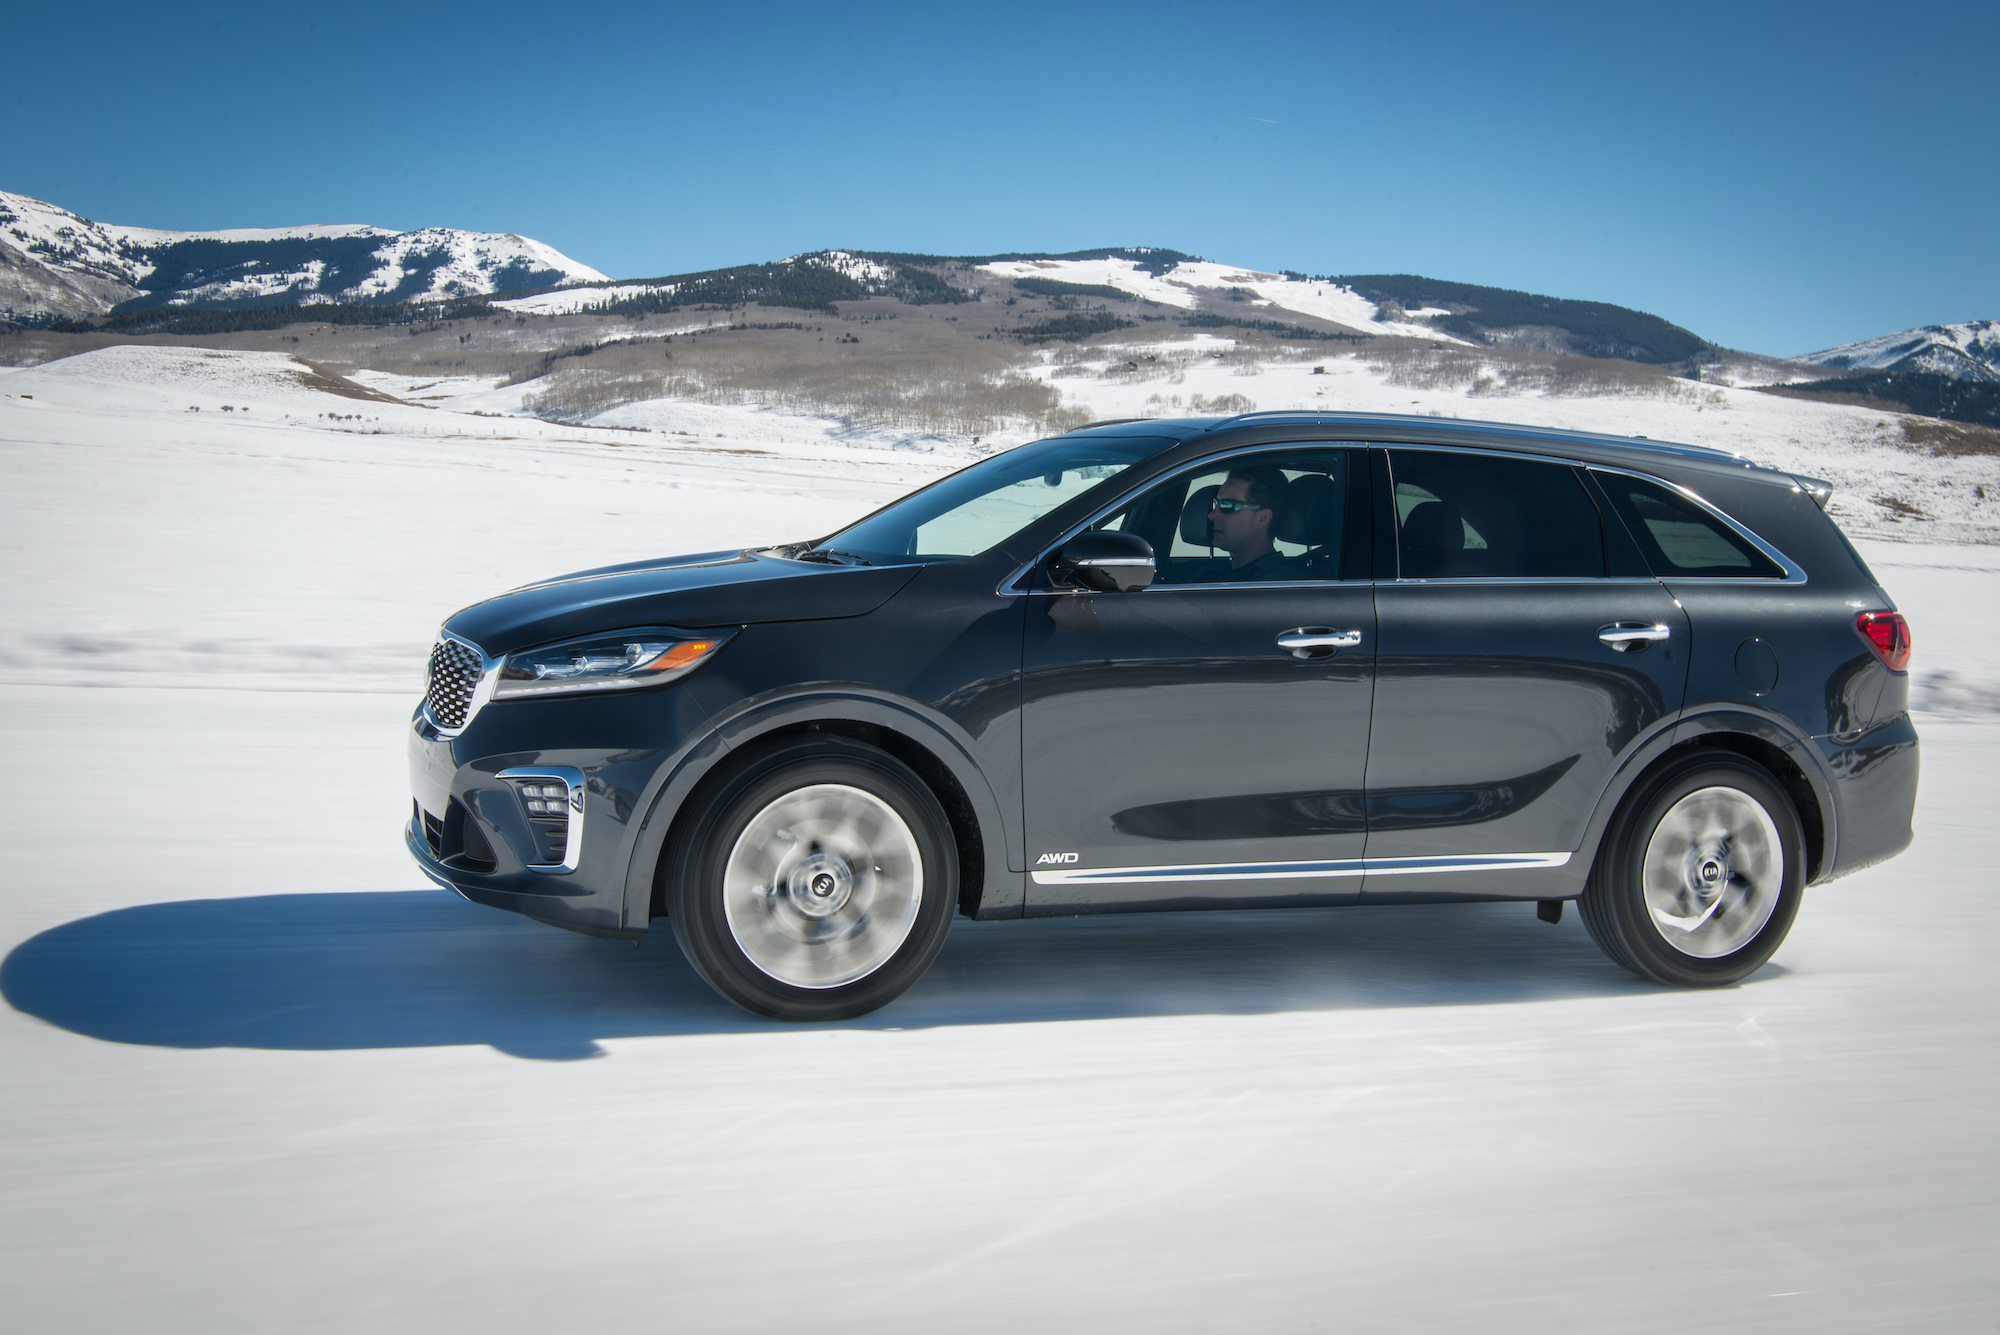 2020 kia sorento review ratings specs prices and photos the car connection 2020 kia sorento review ratings specs